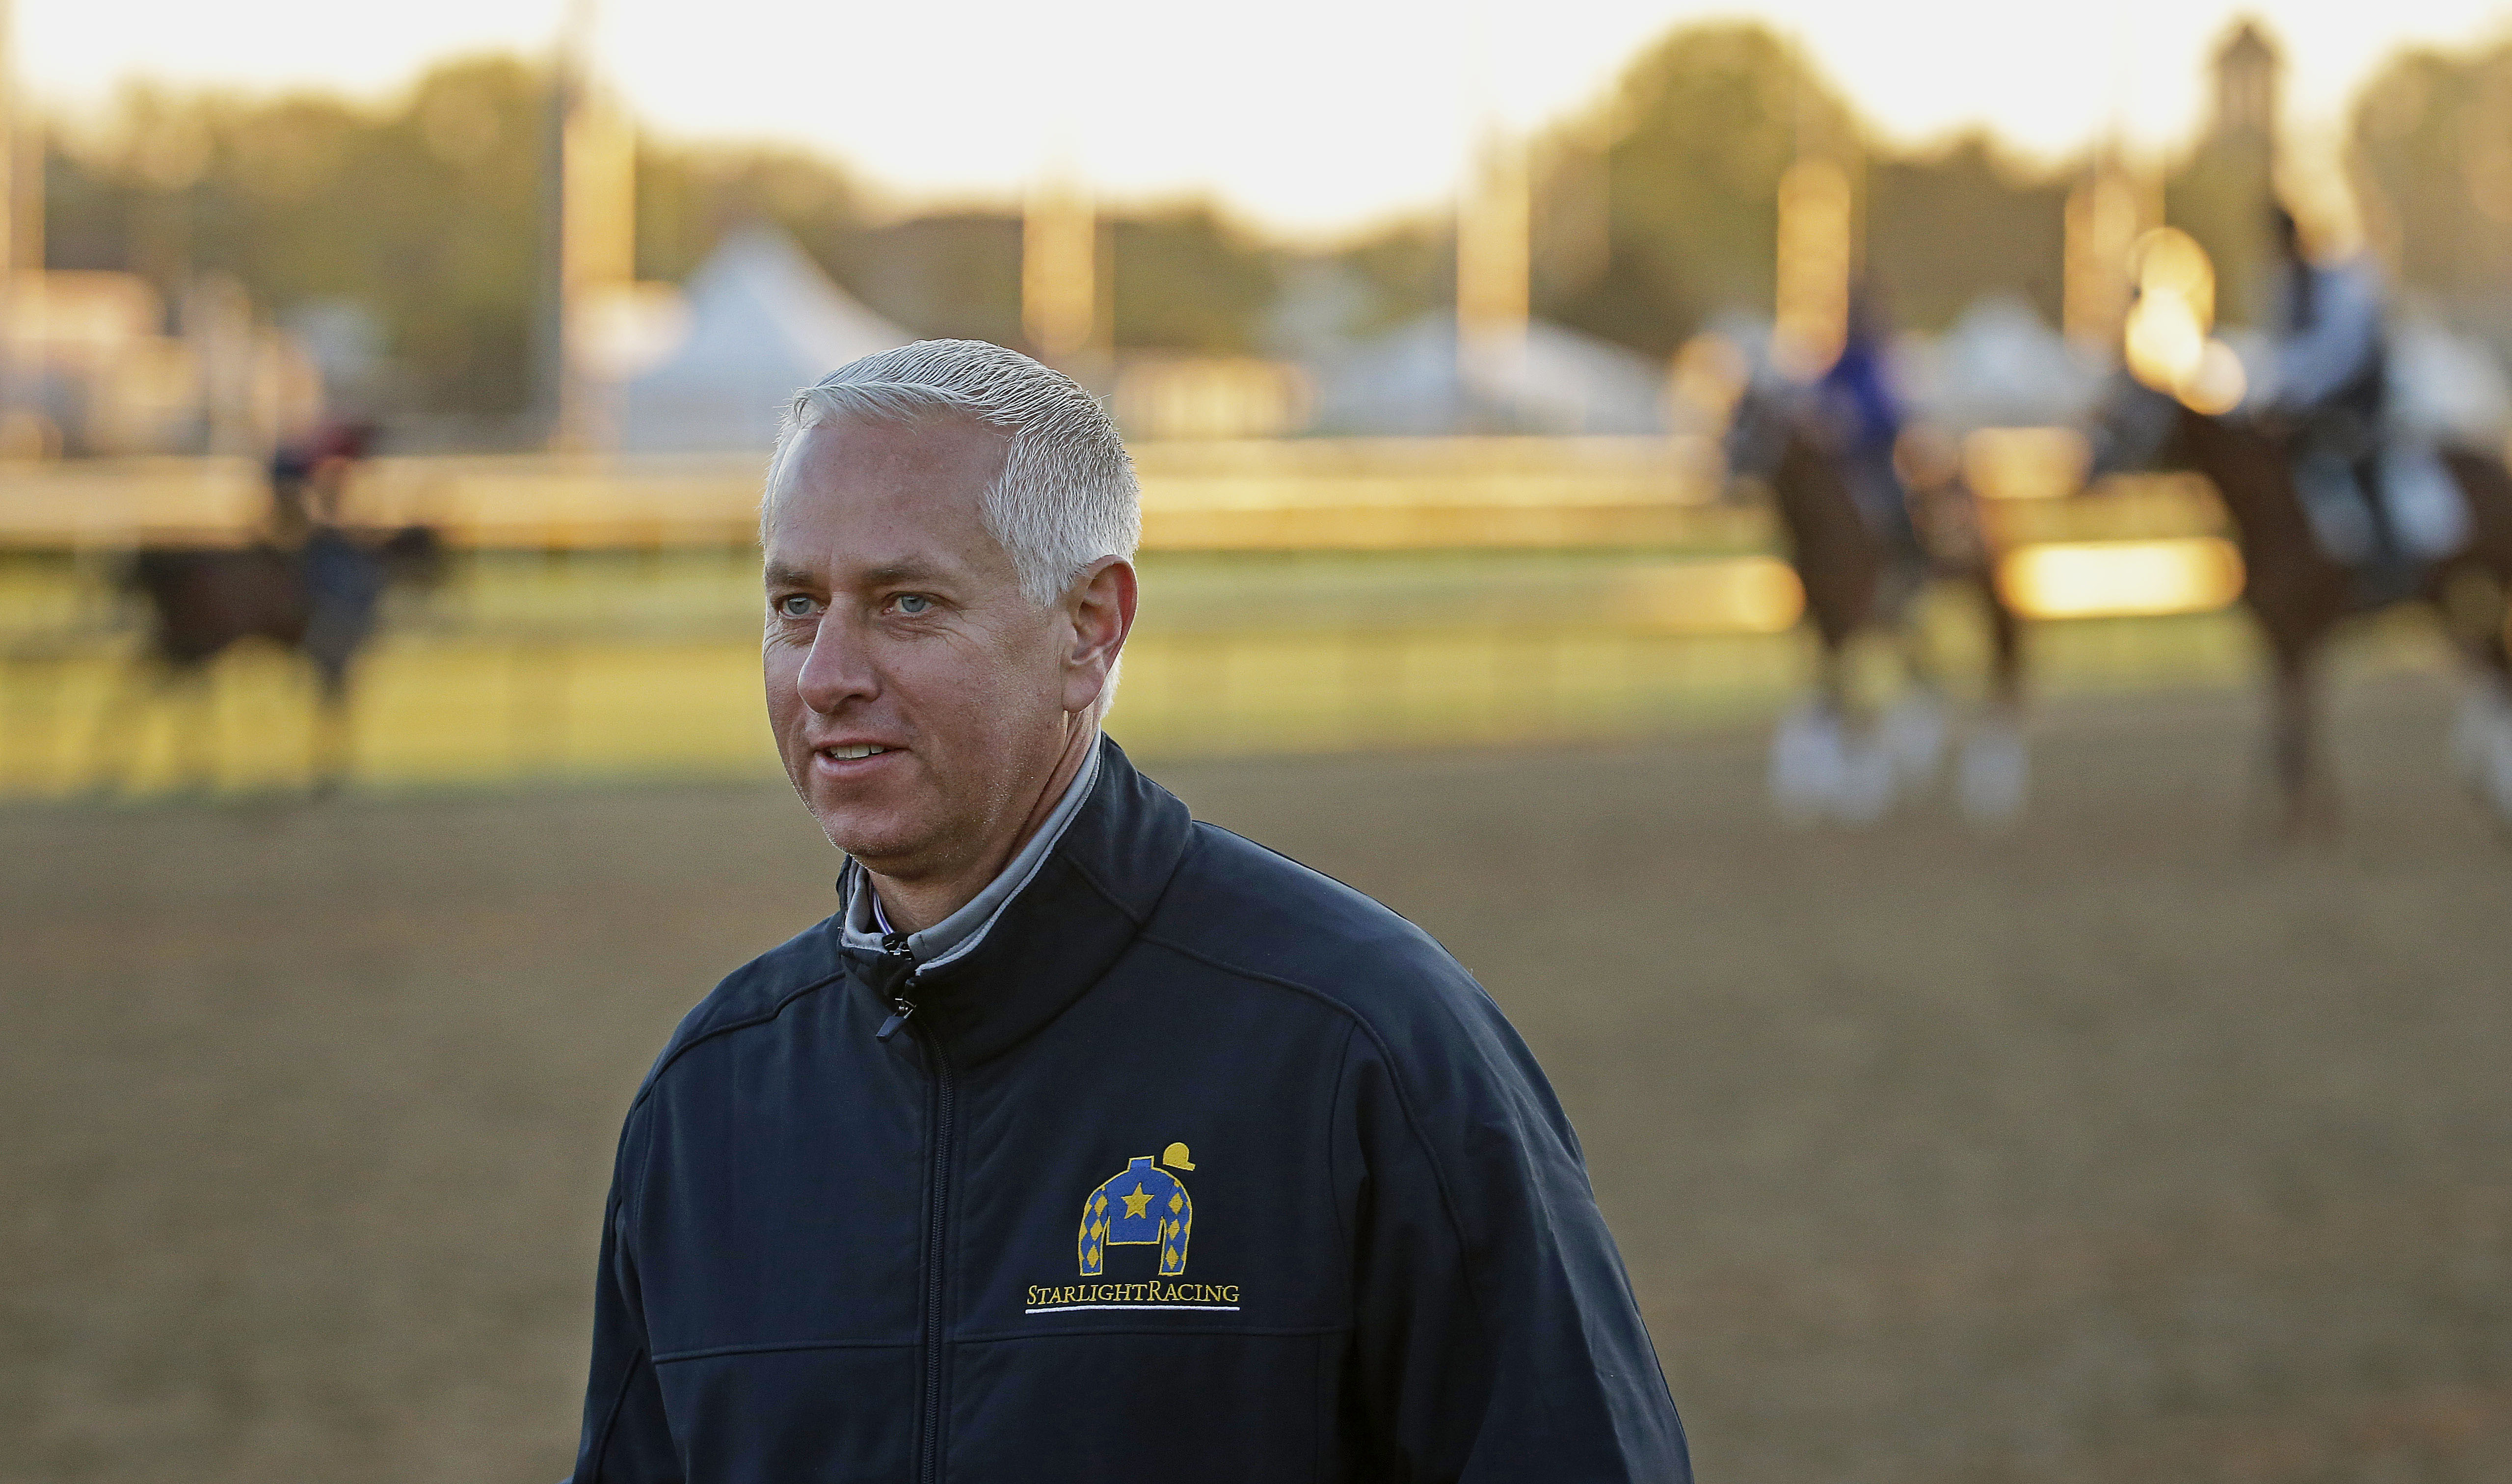 FILE - In this April 29, 2015, file photo, trainer Todd Pletcher watches horses on the track at Churchill Downs in Louisville, Ky. Pletcher became the 10th thoroughbred trainer to reach 4,000 victories when Eagle Scout won the fifth race at Gulfstream Par